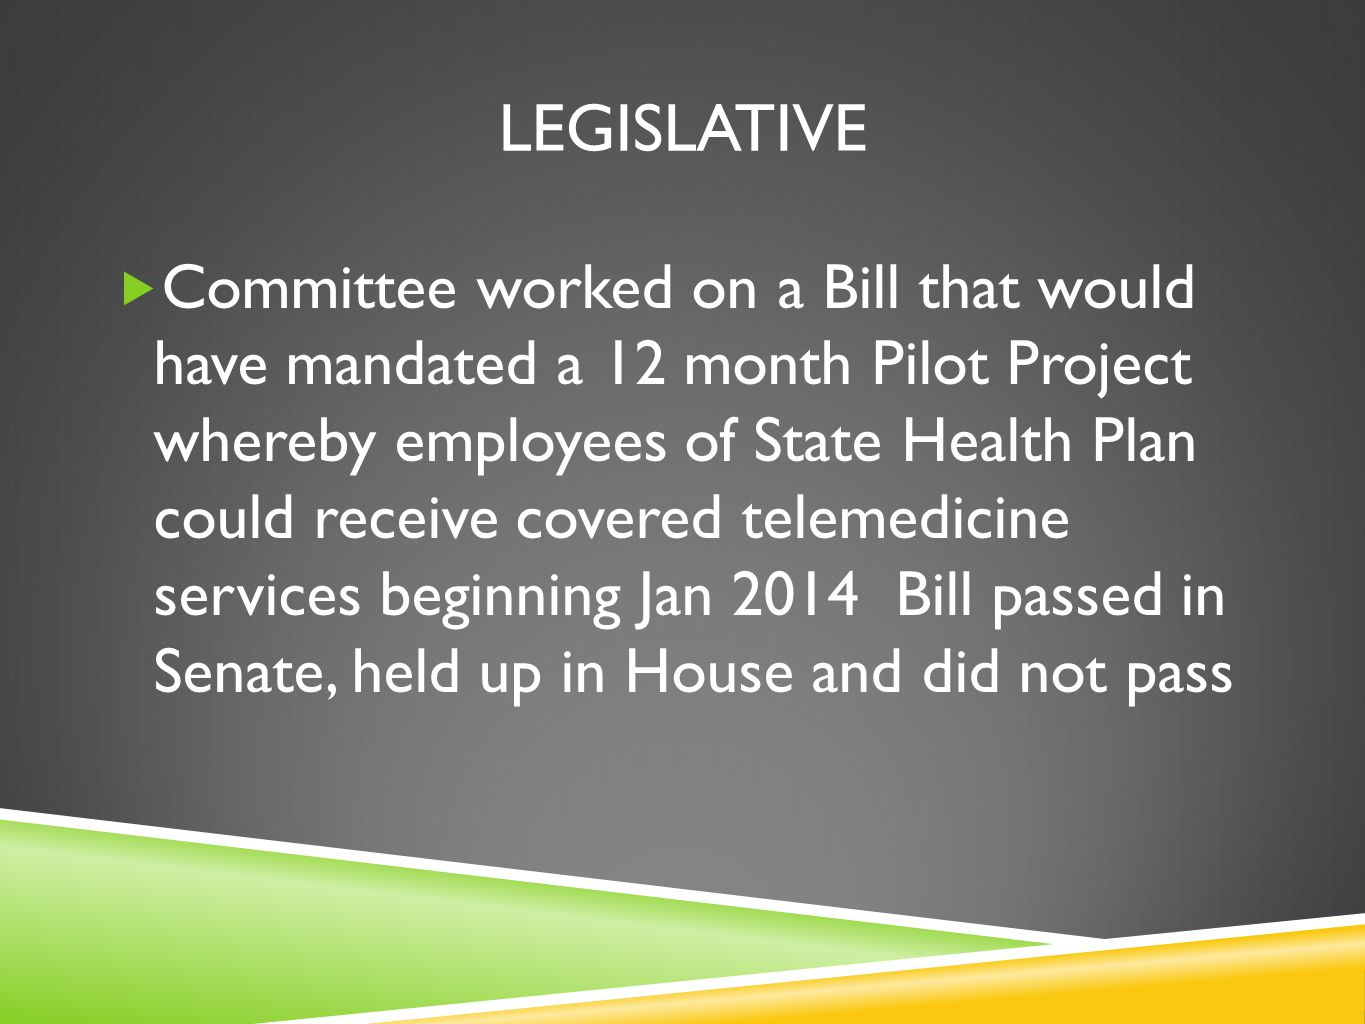 LEGISLATIVE Committee worked on a Bill that would have mandated a 12 month Pilot Project whereby employees of State Health Plan could receive covered